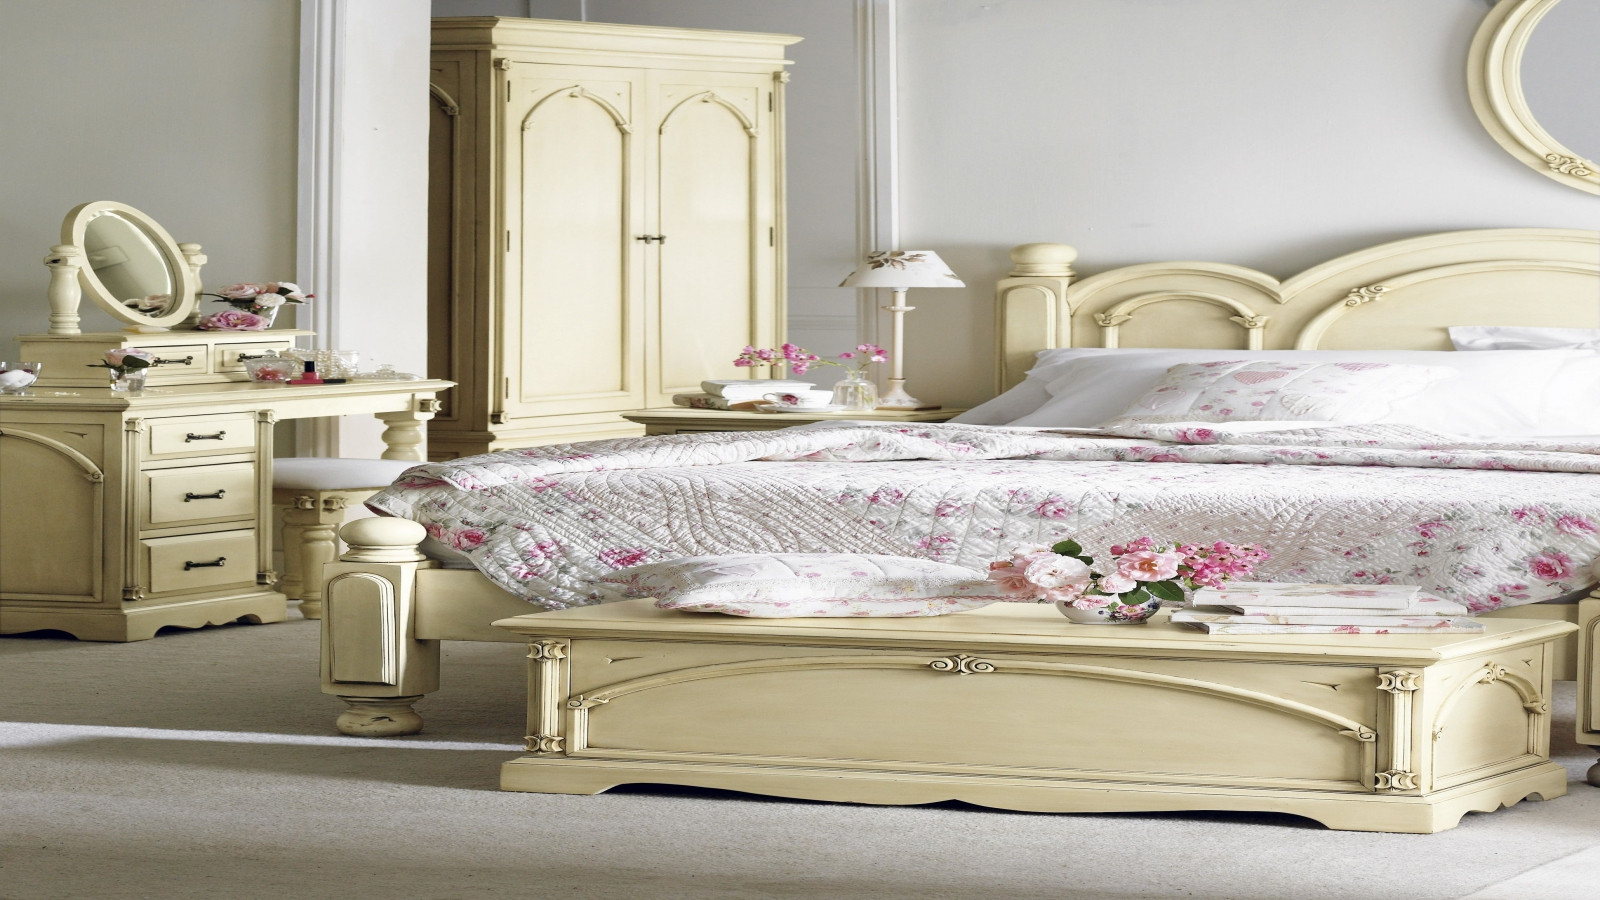 Best ideas about Shabby Chic Bedroom Sets . Save or Pin Shabby Chic Bedroom Furniture Now.